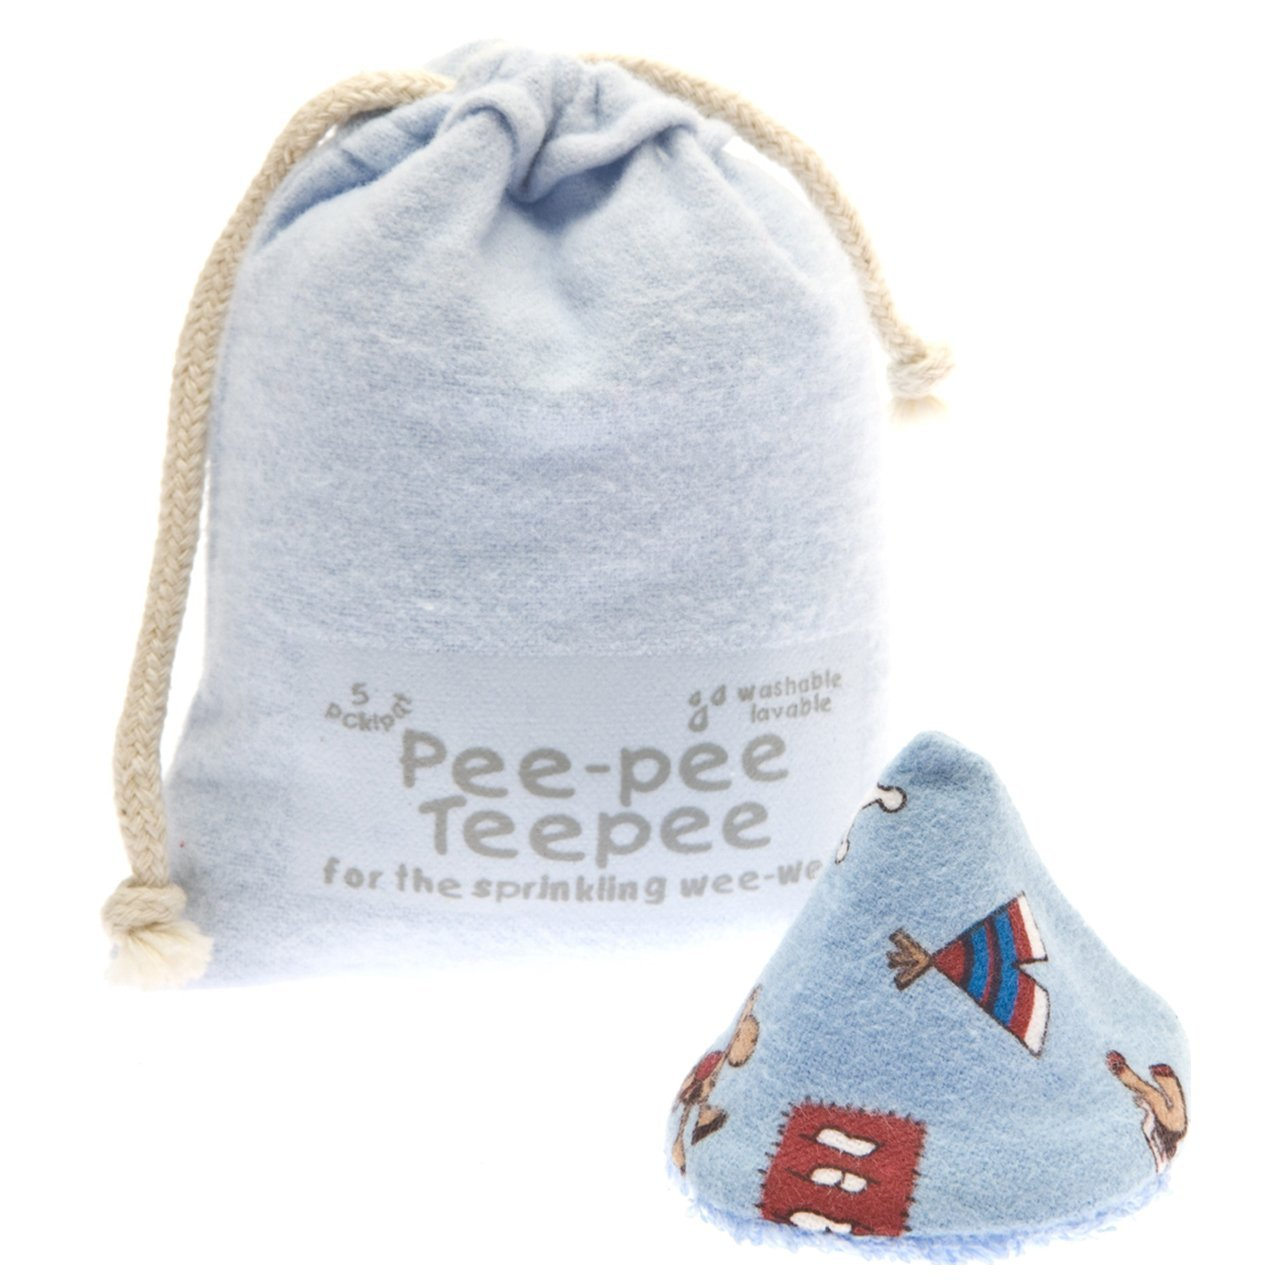 Pee-pee Teepee Wild West Blue - Laundry Bag Beba Bean PT3061